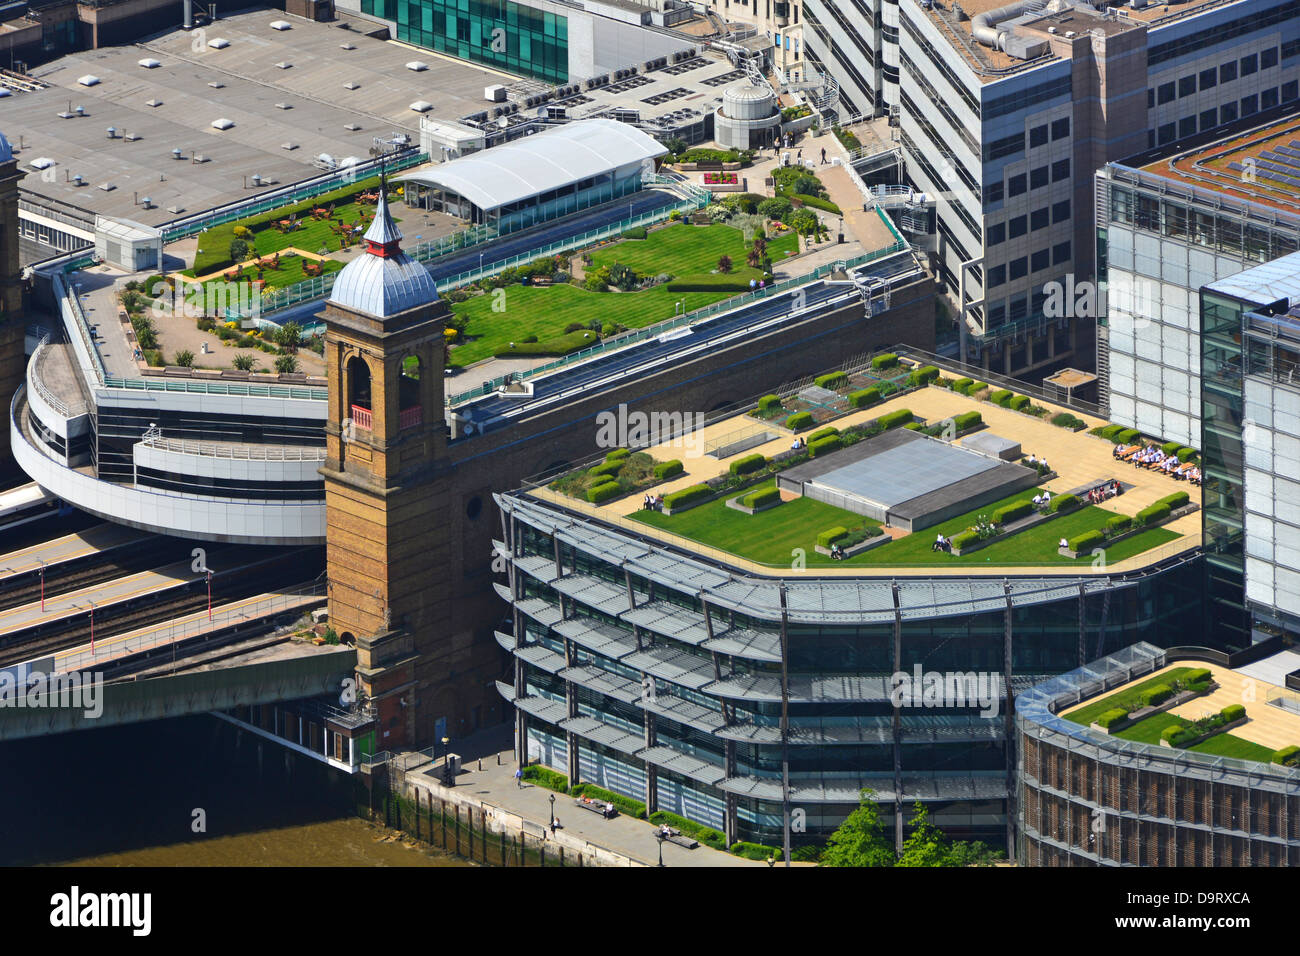 Roof Top Gardens On Top Of Cannon Street Train Station And On Roofs Of  Adjacent Buildings